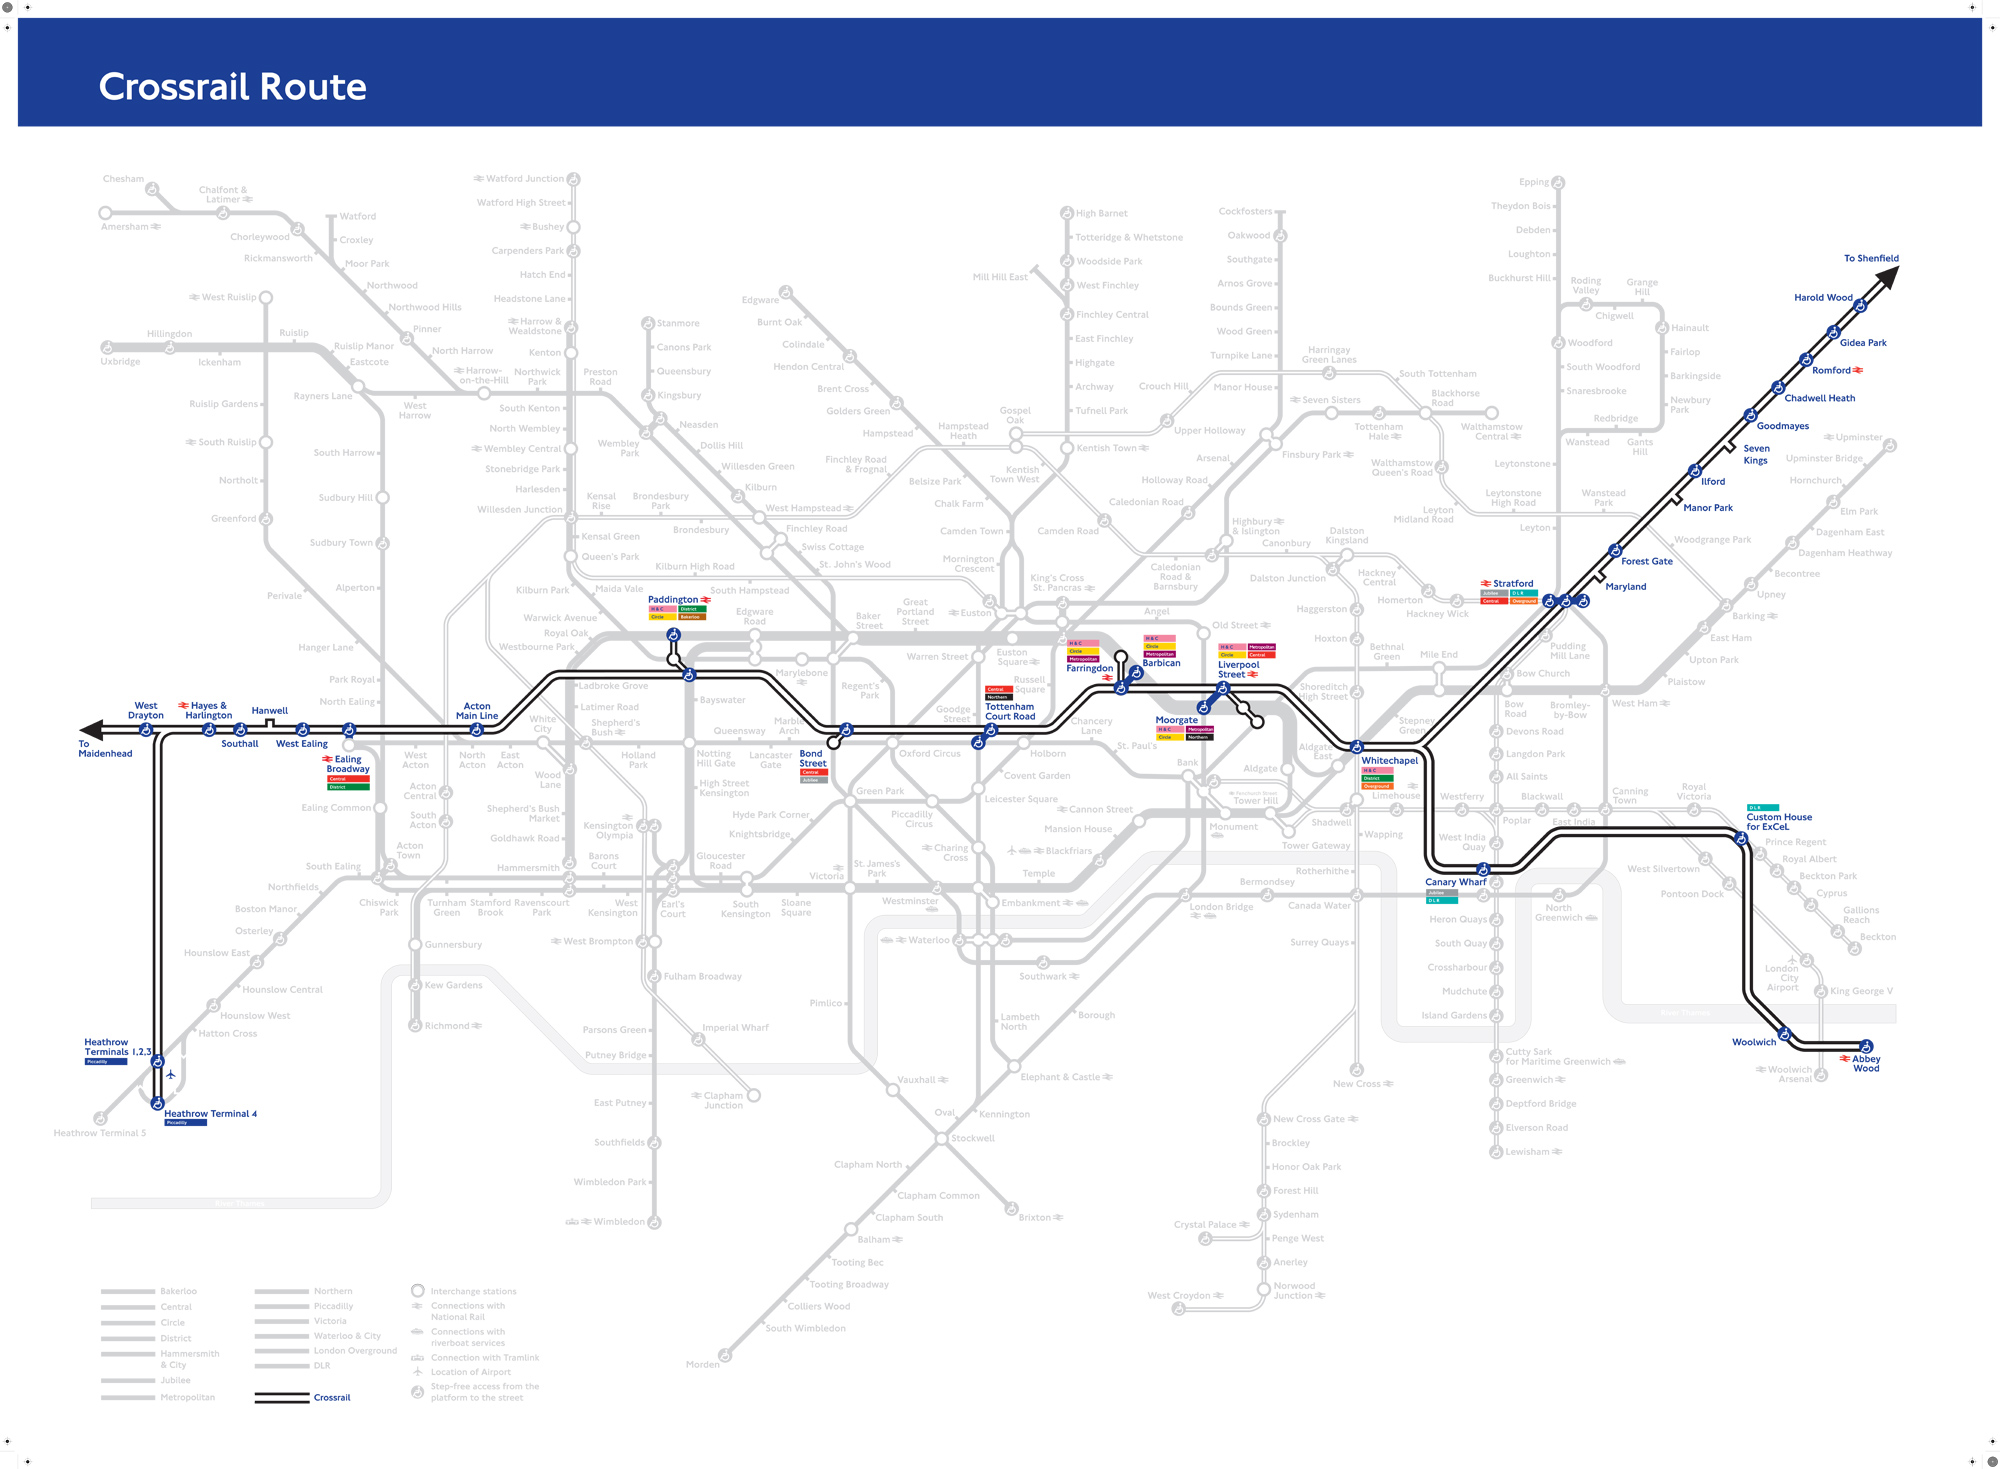 Tube Map With Crossrail Crossrail, As It May Appear On The Tube Map | Londonist Tube Map With Crossrail